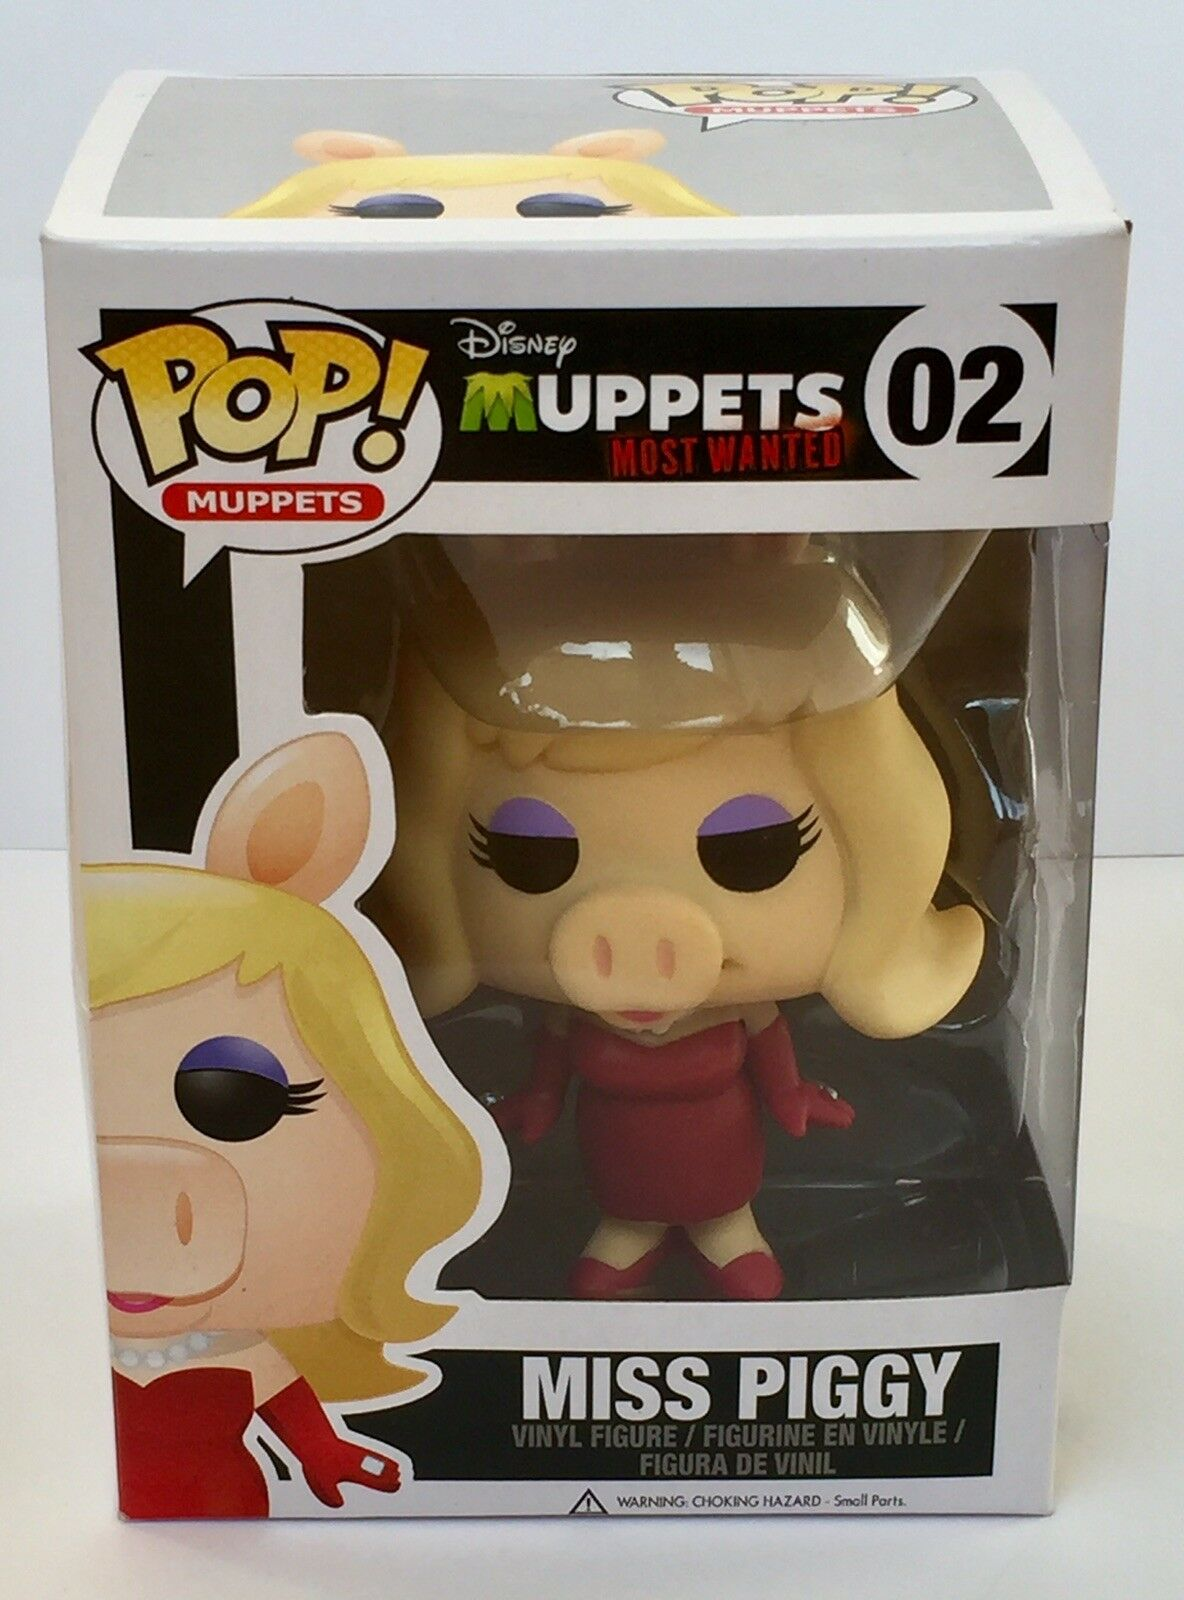 The Muppets Miss Piggy Funko Pop Vinyl Figure Vaulted & Predector